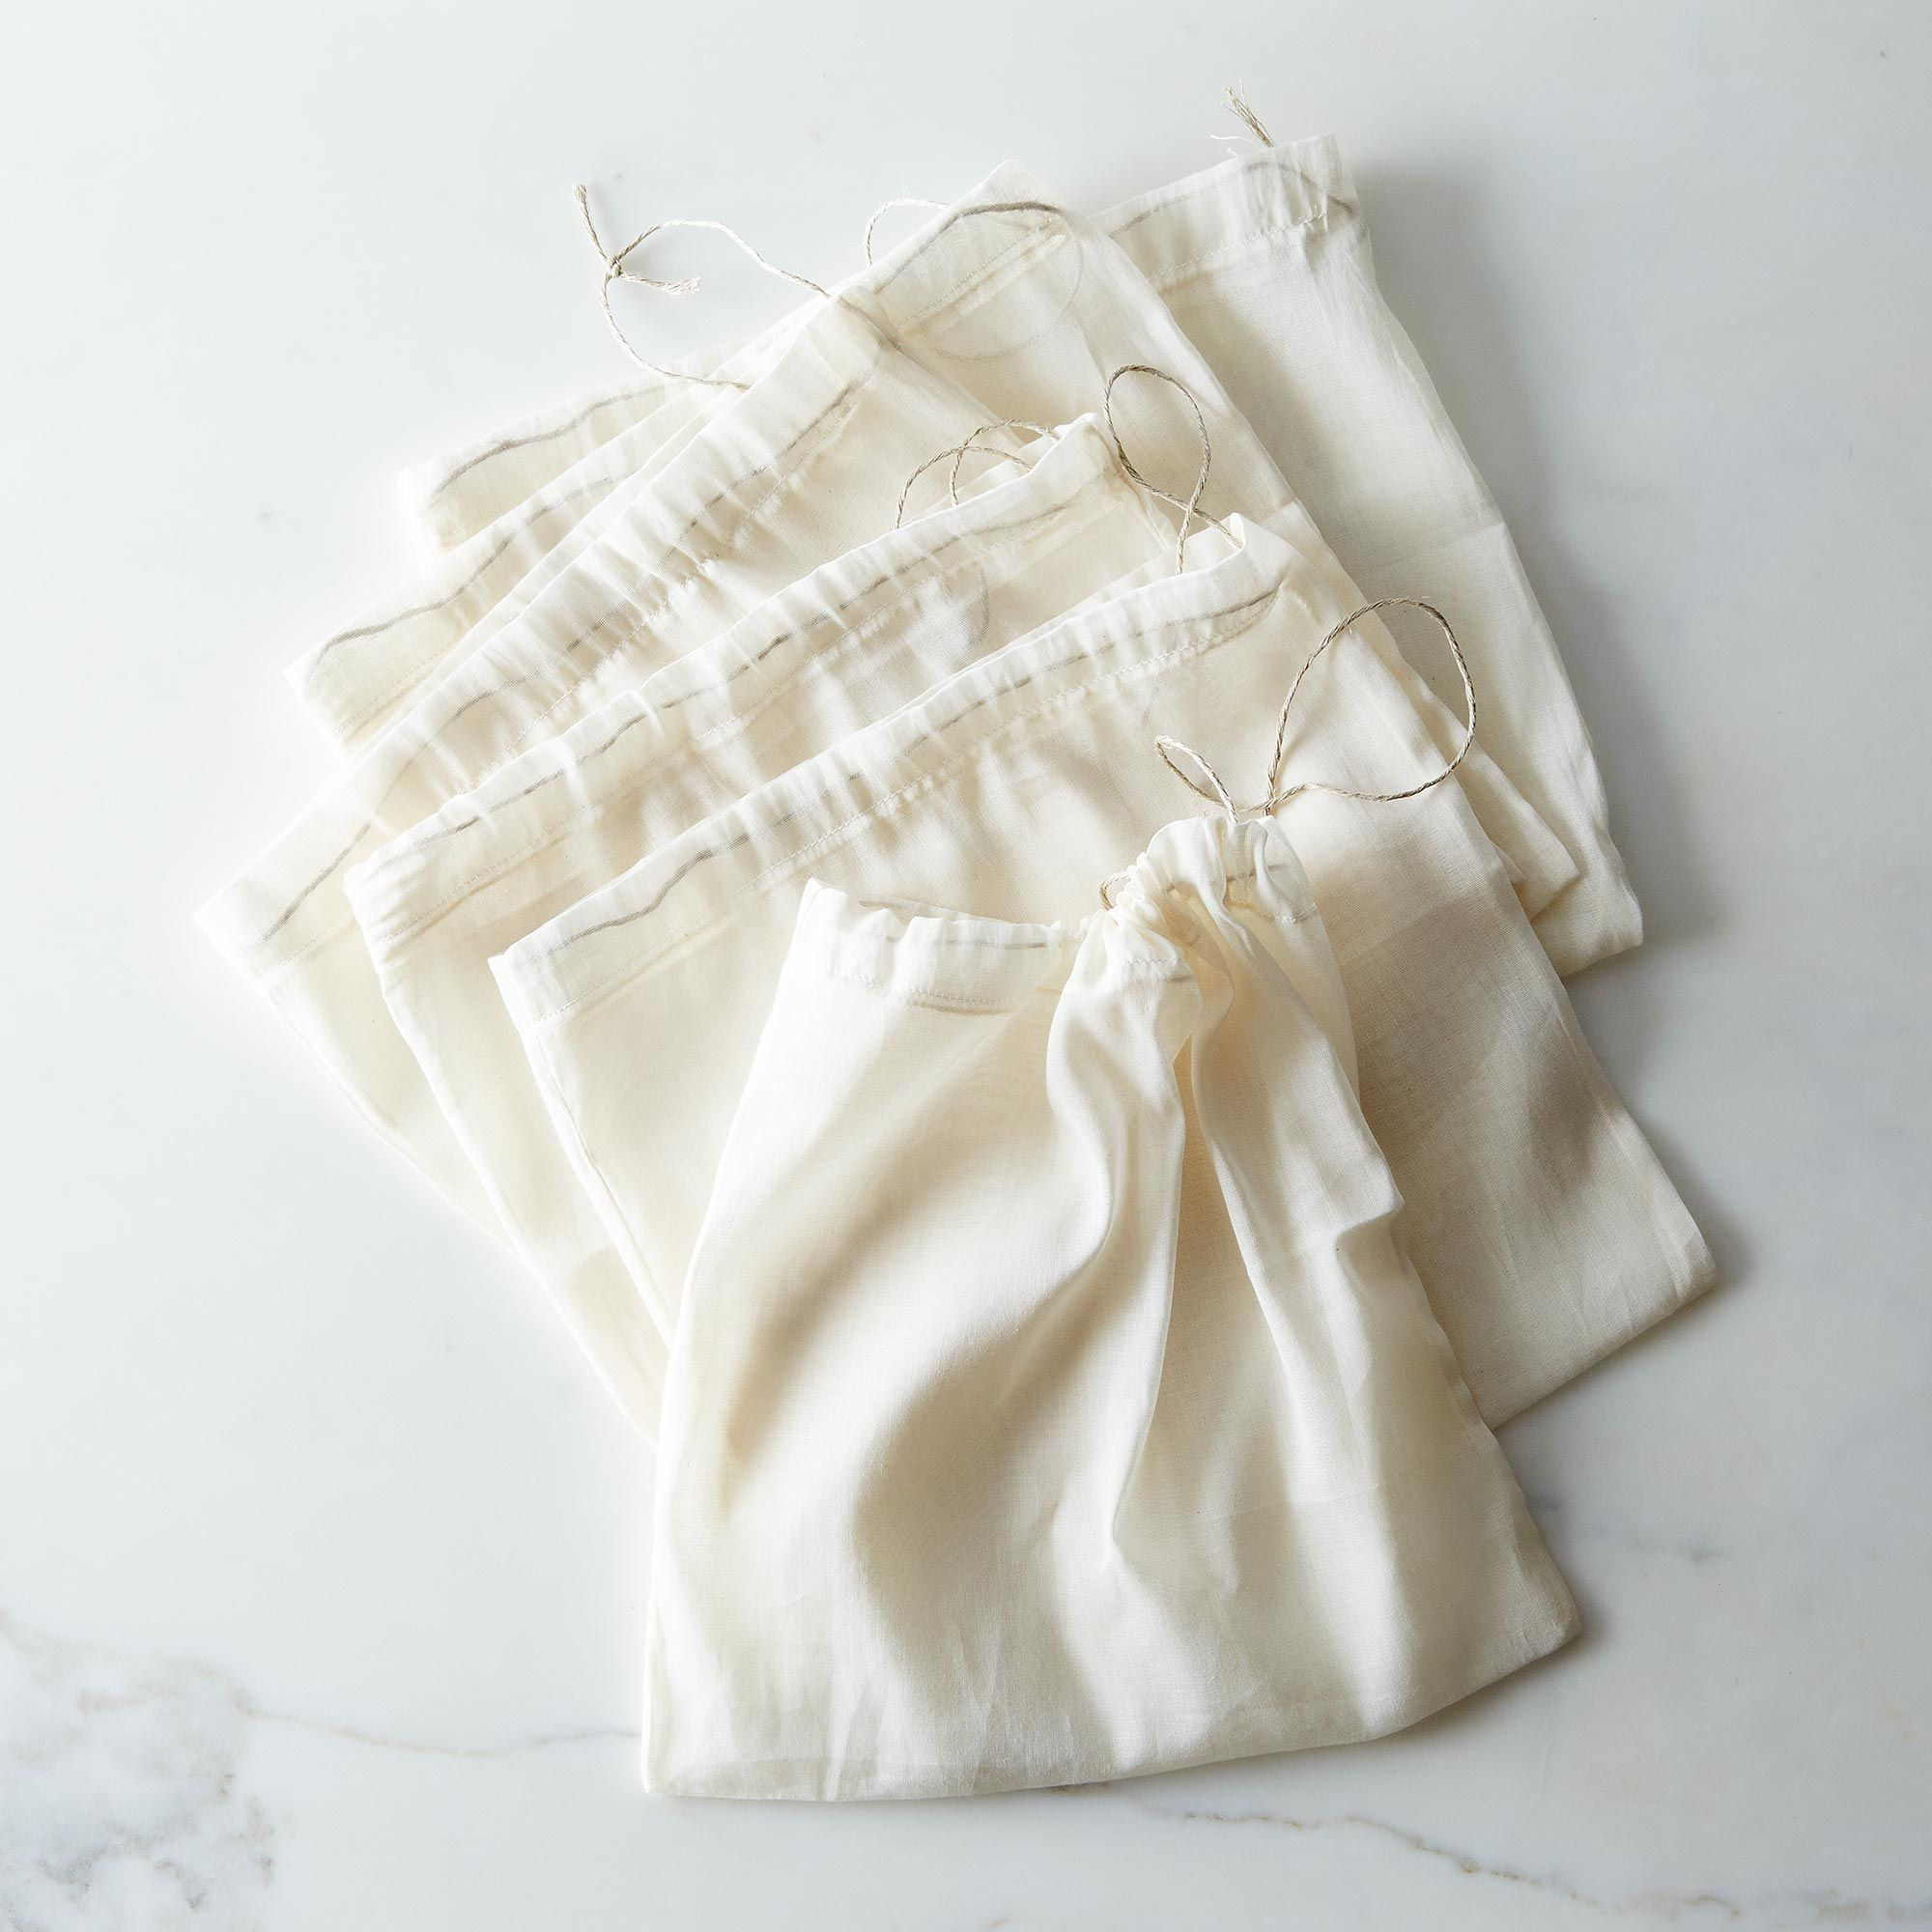 8a900b4b-47eb-434f-9bbc-65319adb5668--2014-0331_mother-earth-reusables_organic-cotton-produce-bags-012